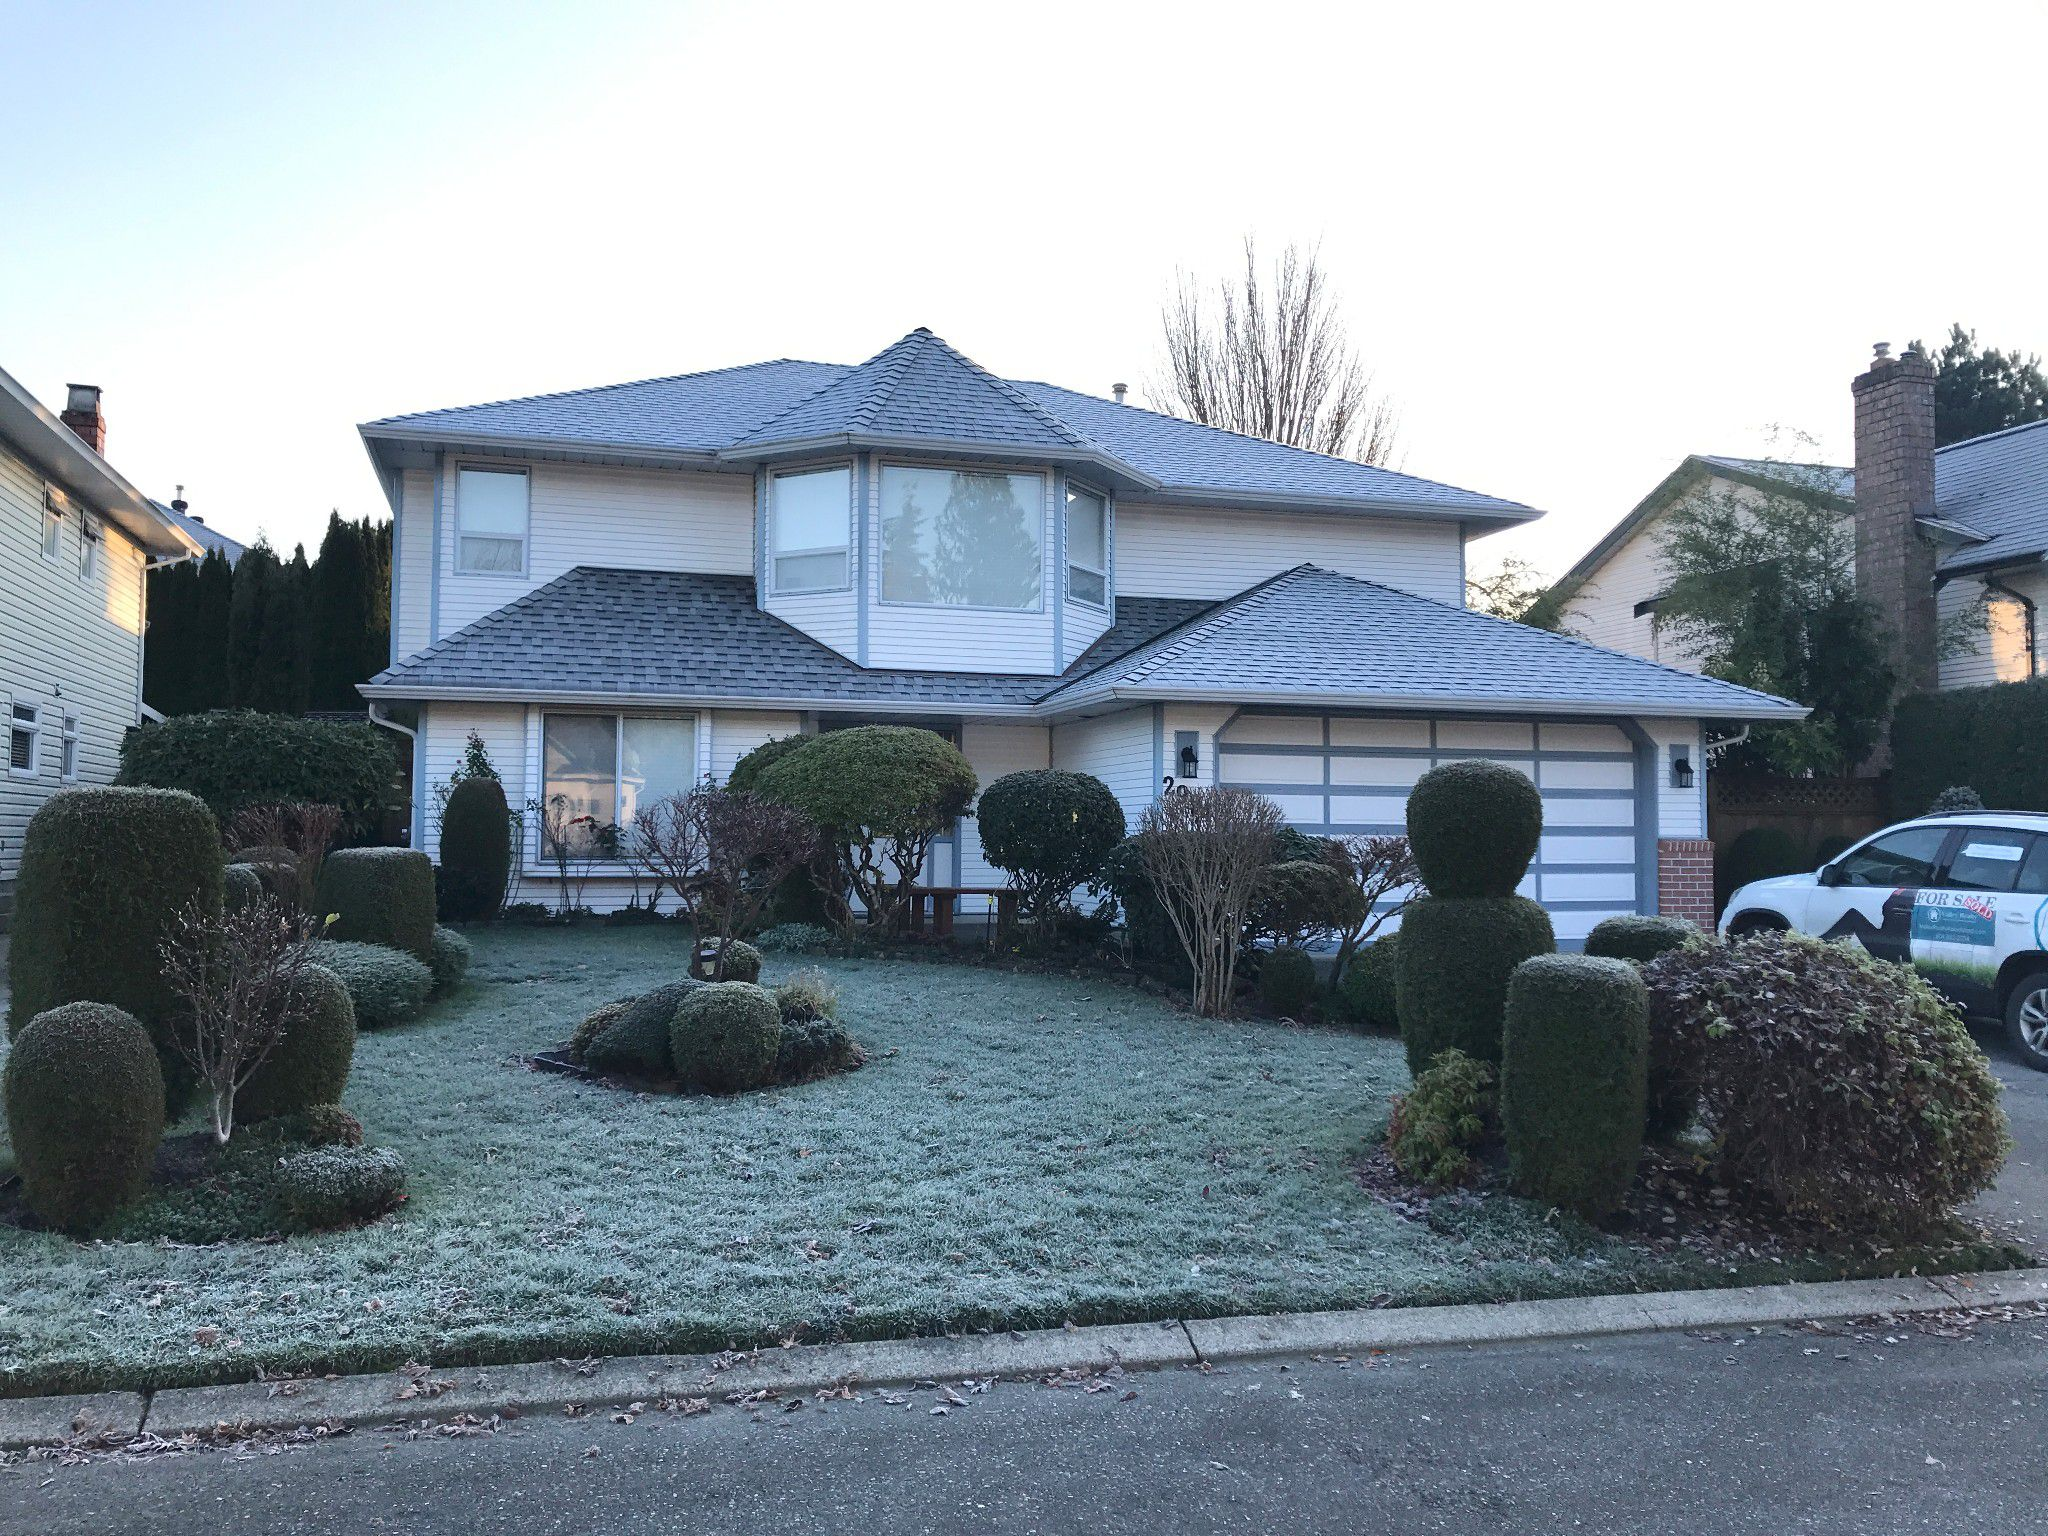 Main Photo: 2994 Eastview St. in Abbotsford: Central Abbotsford House for rent